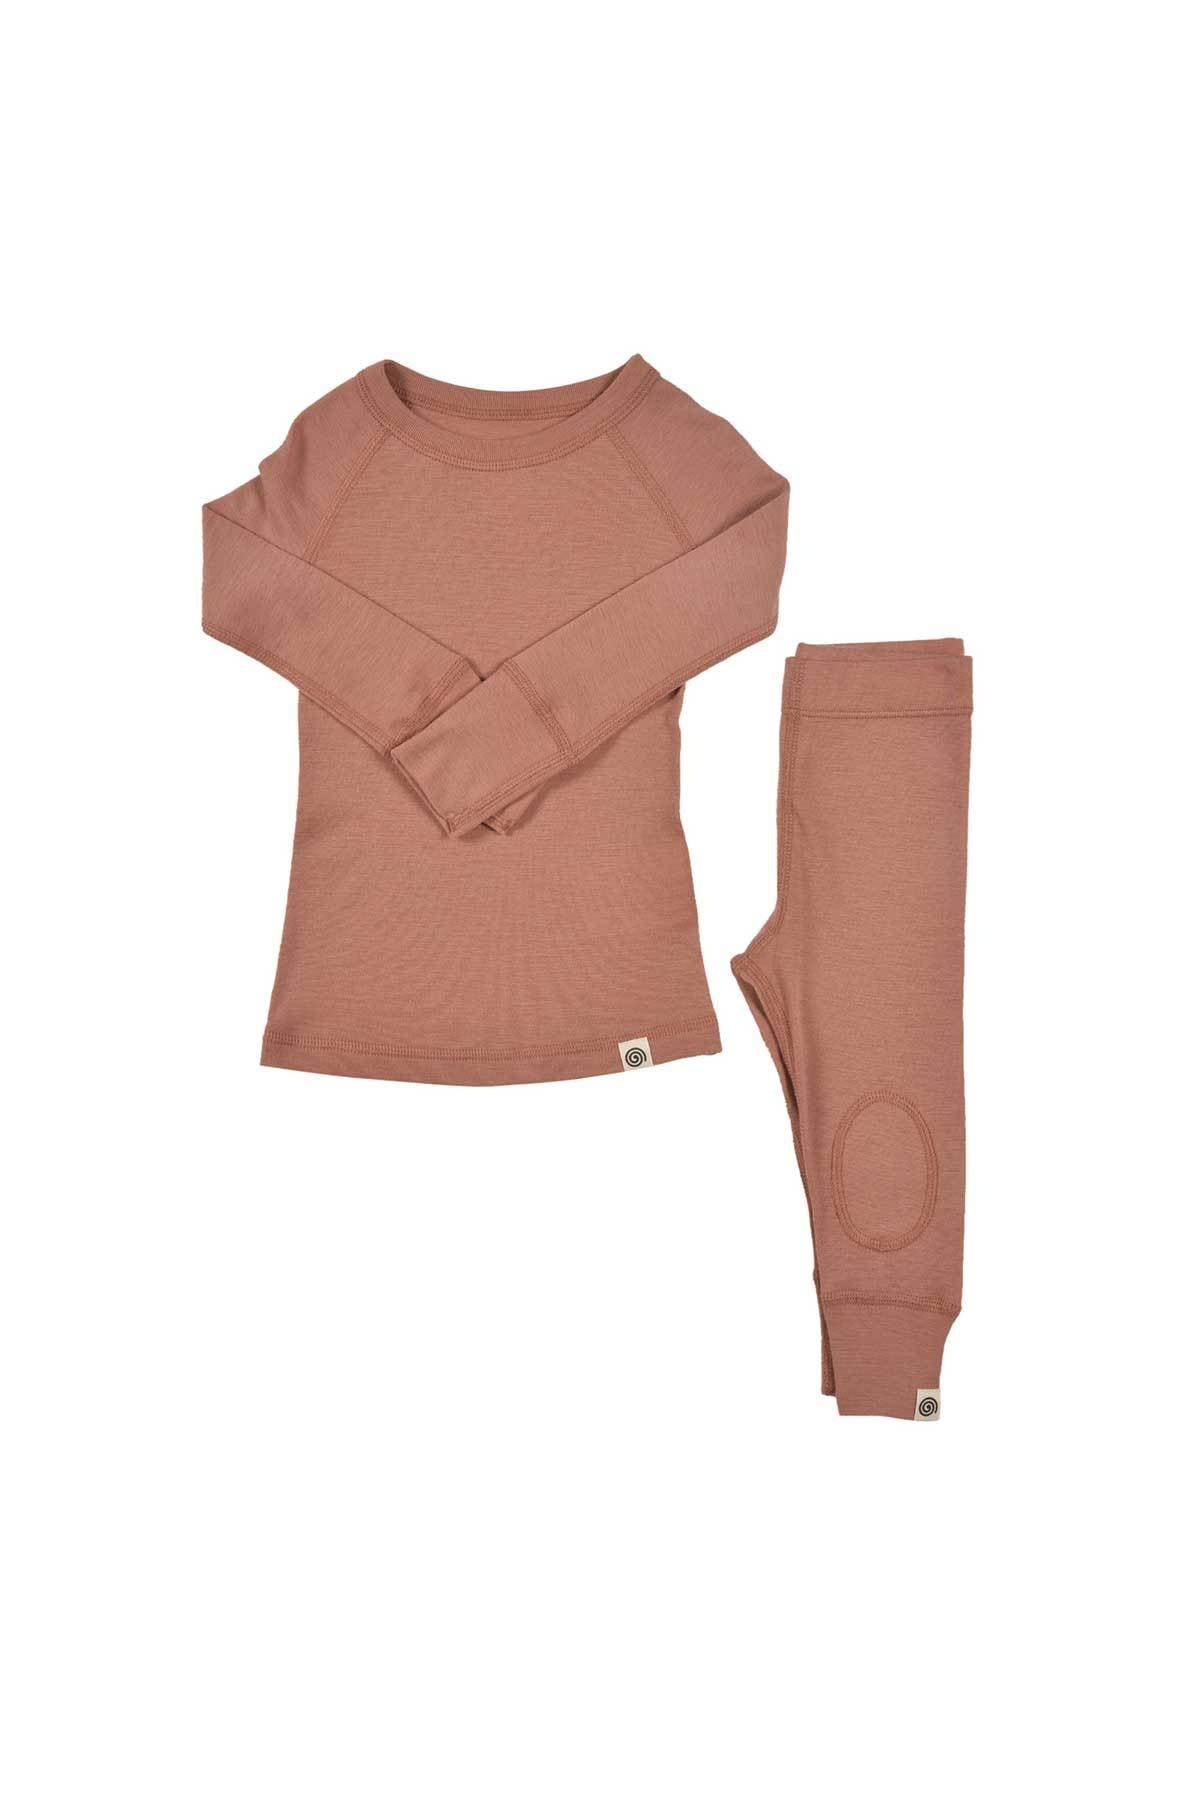 Merino Thermals Set- Dusk